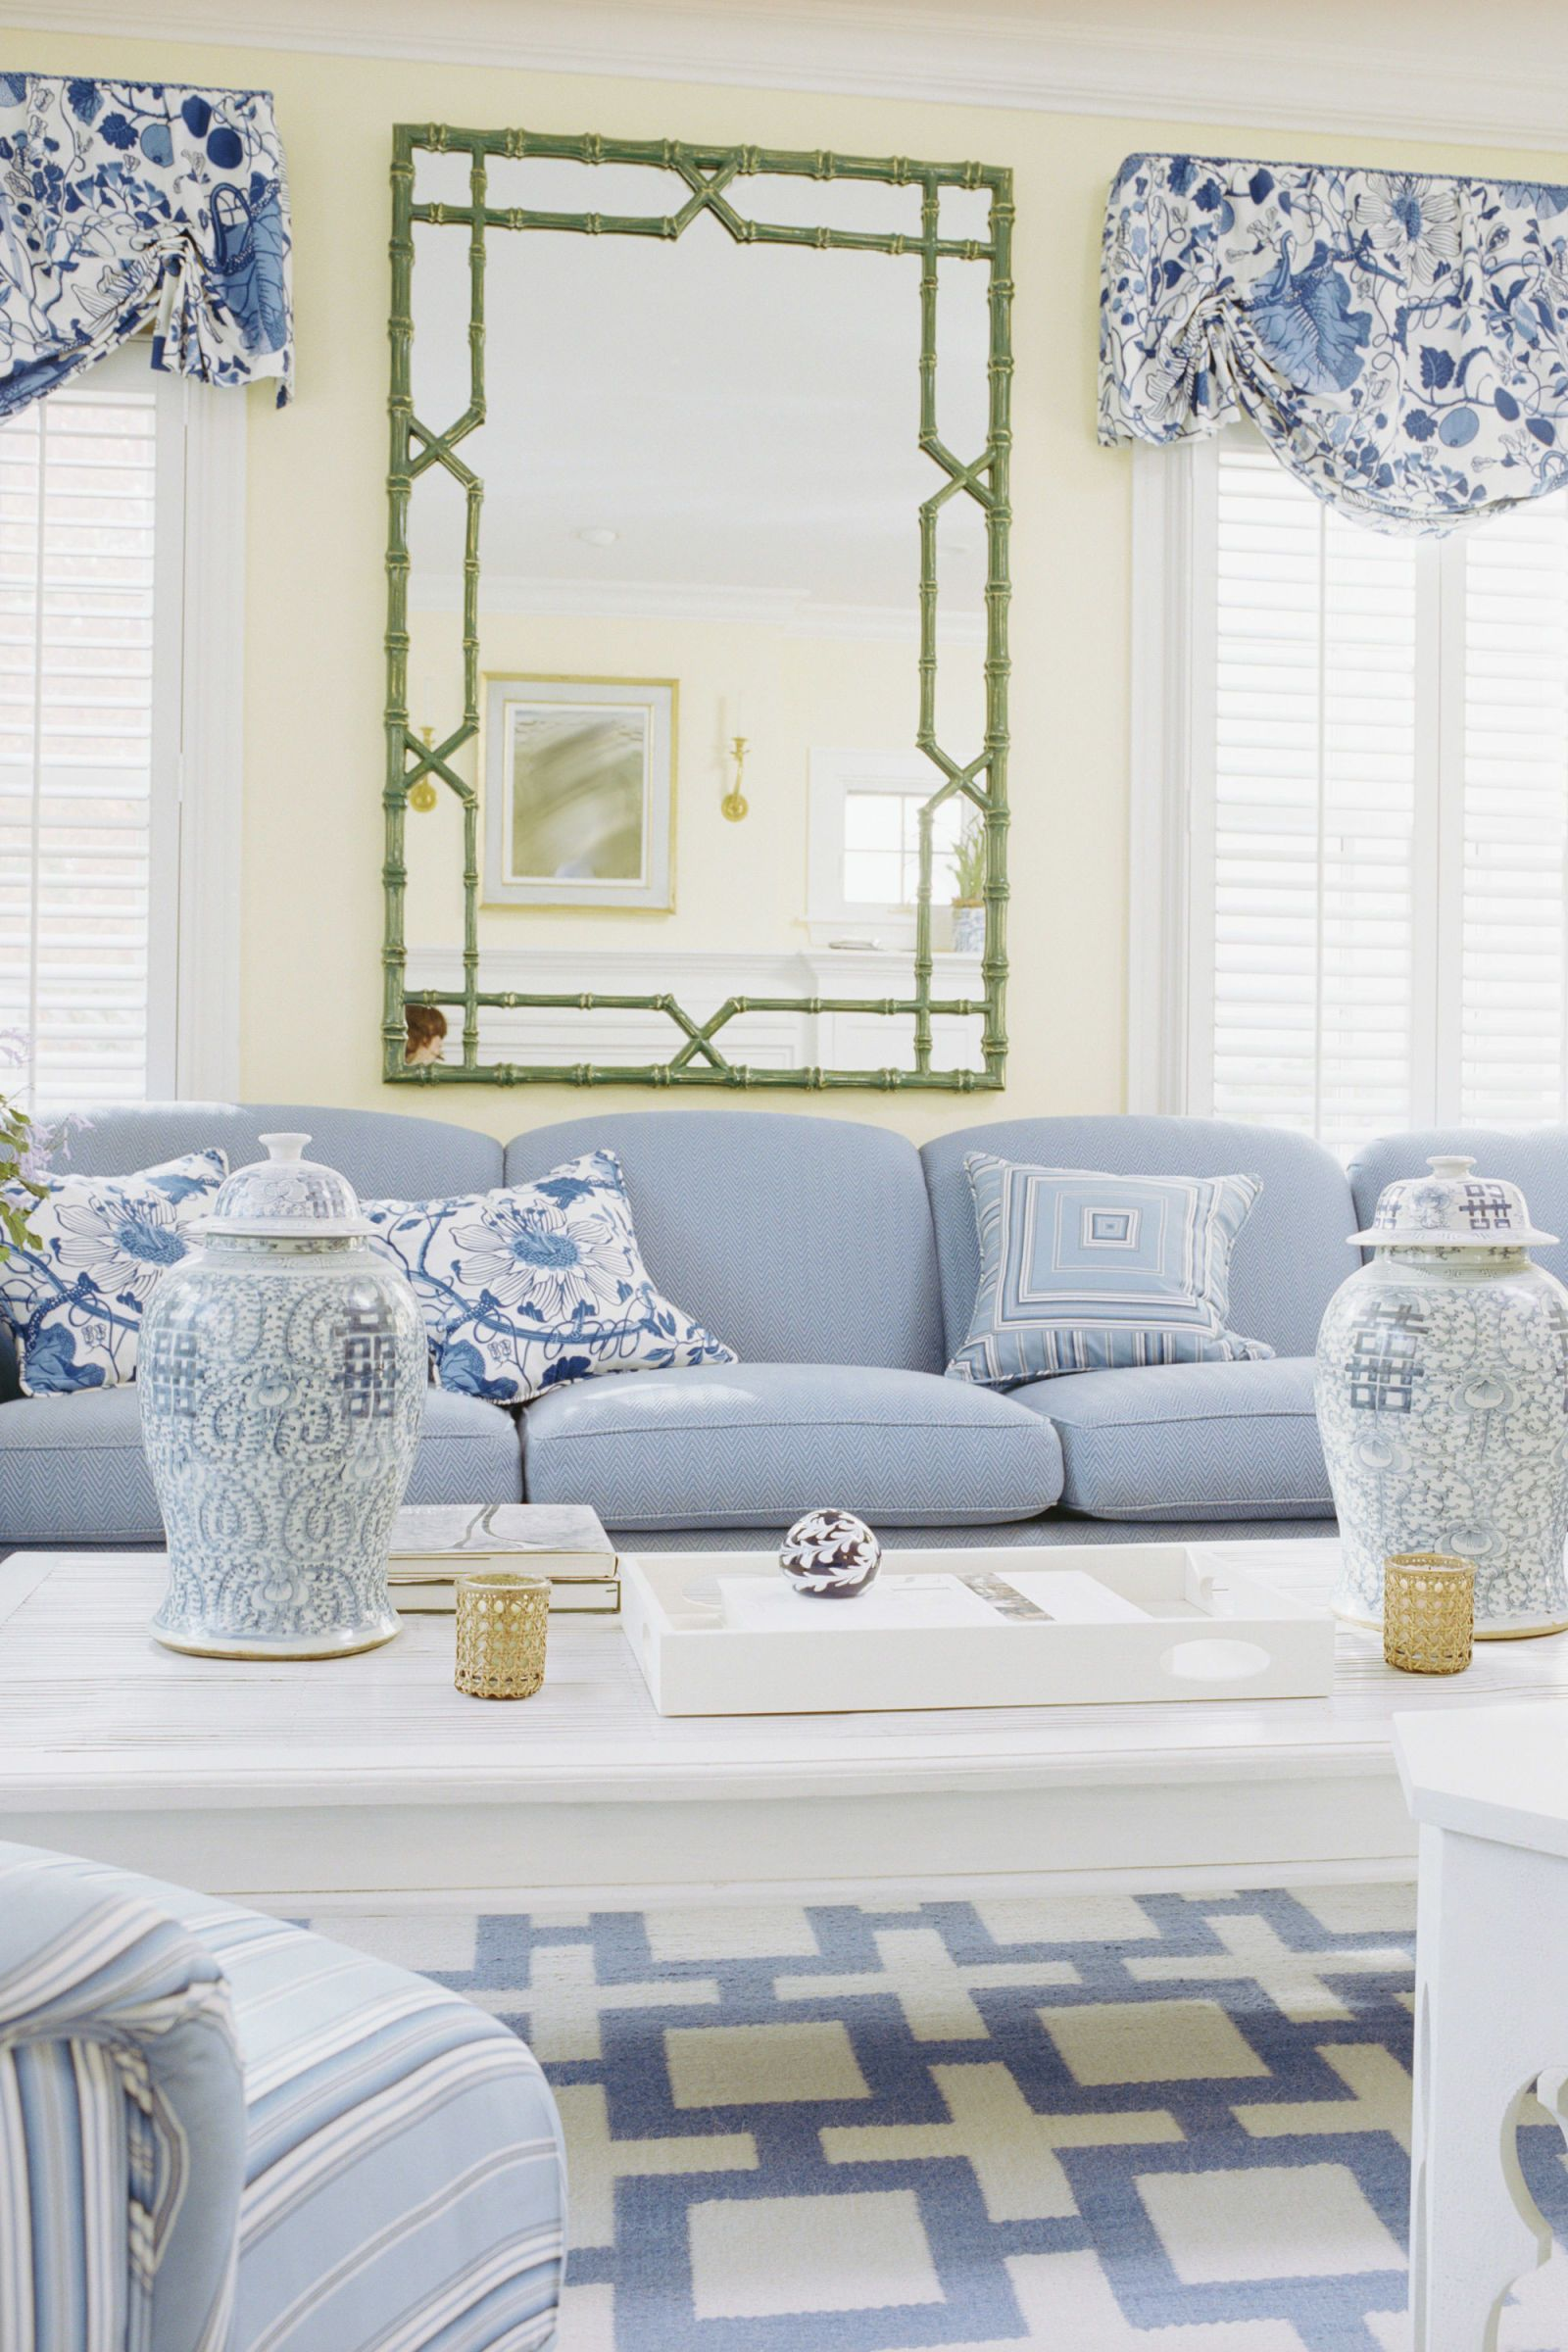 reasons why blue and white is the most classic color combination